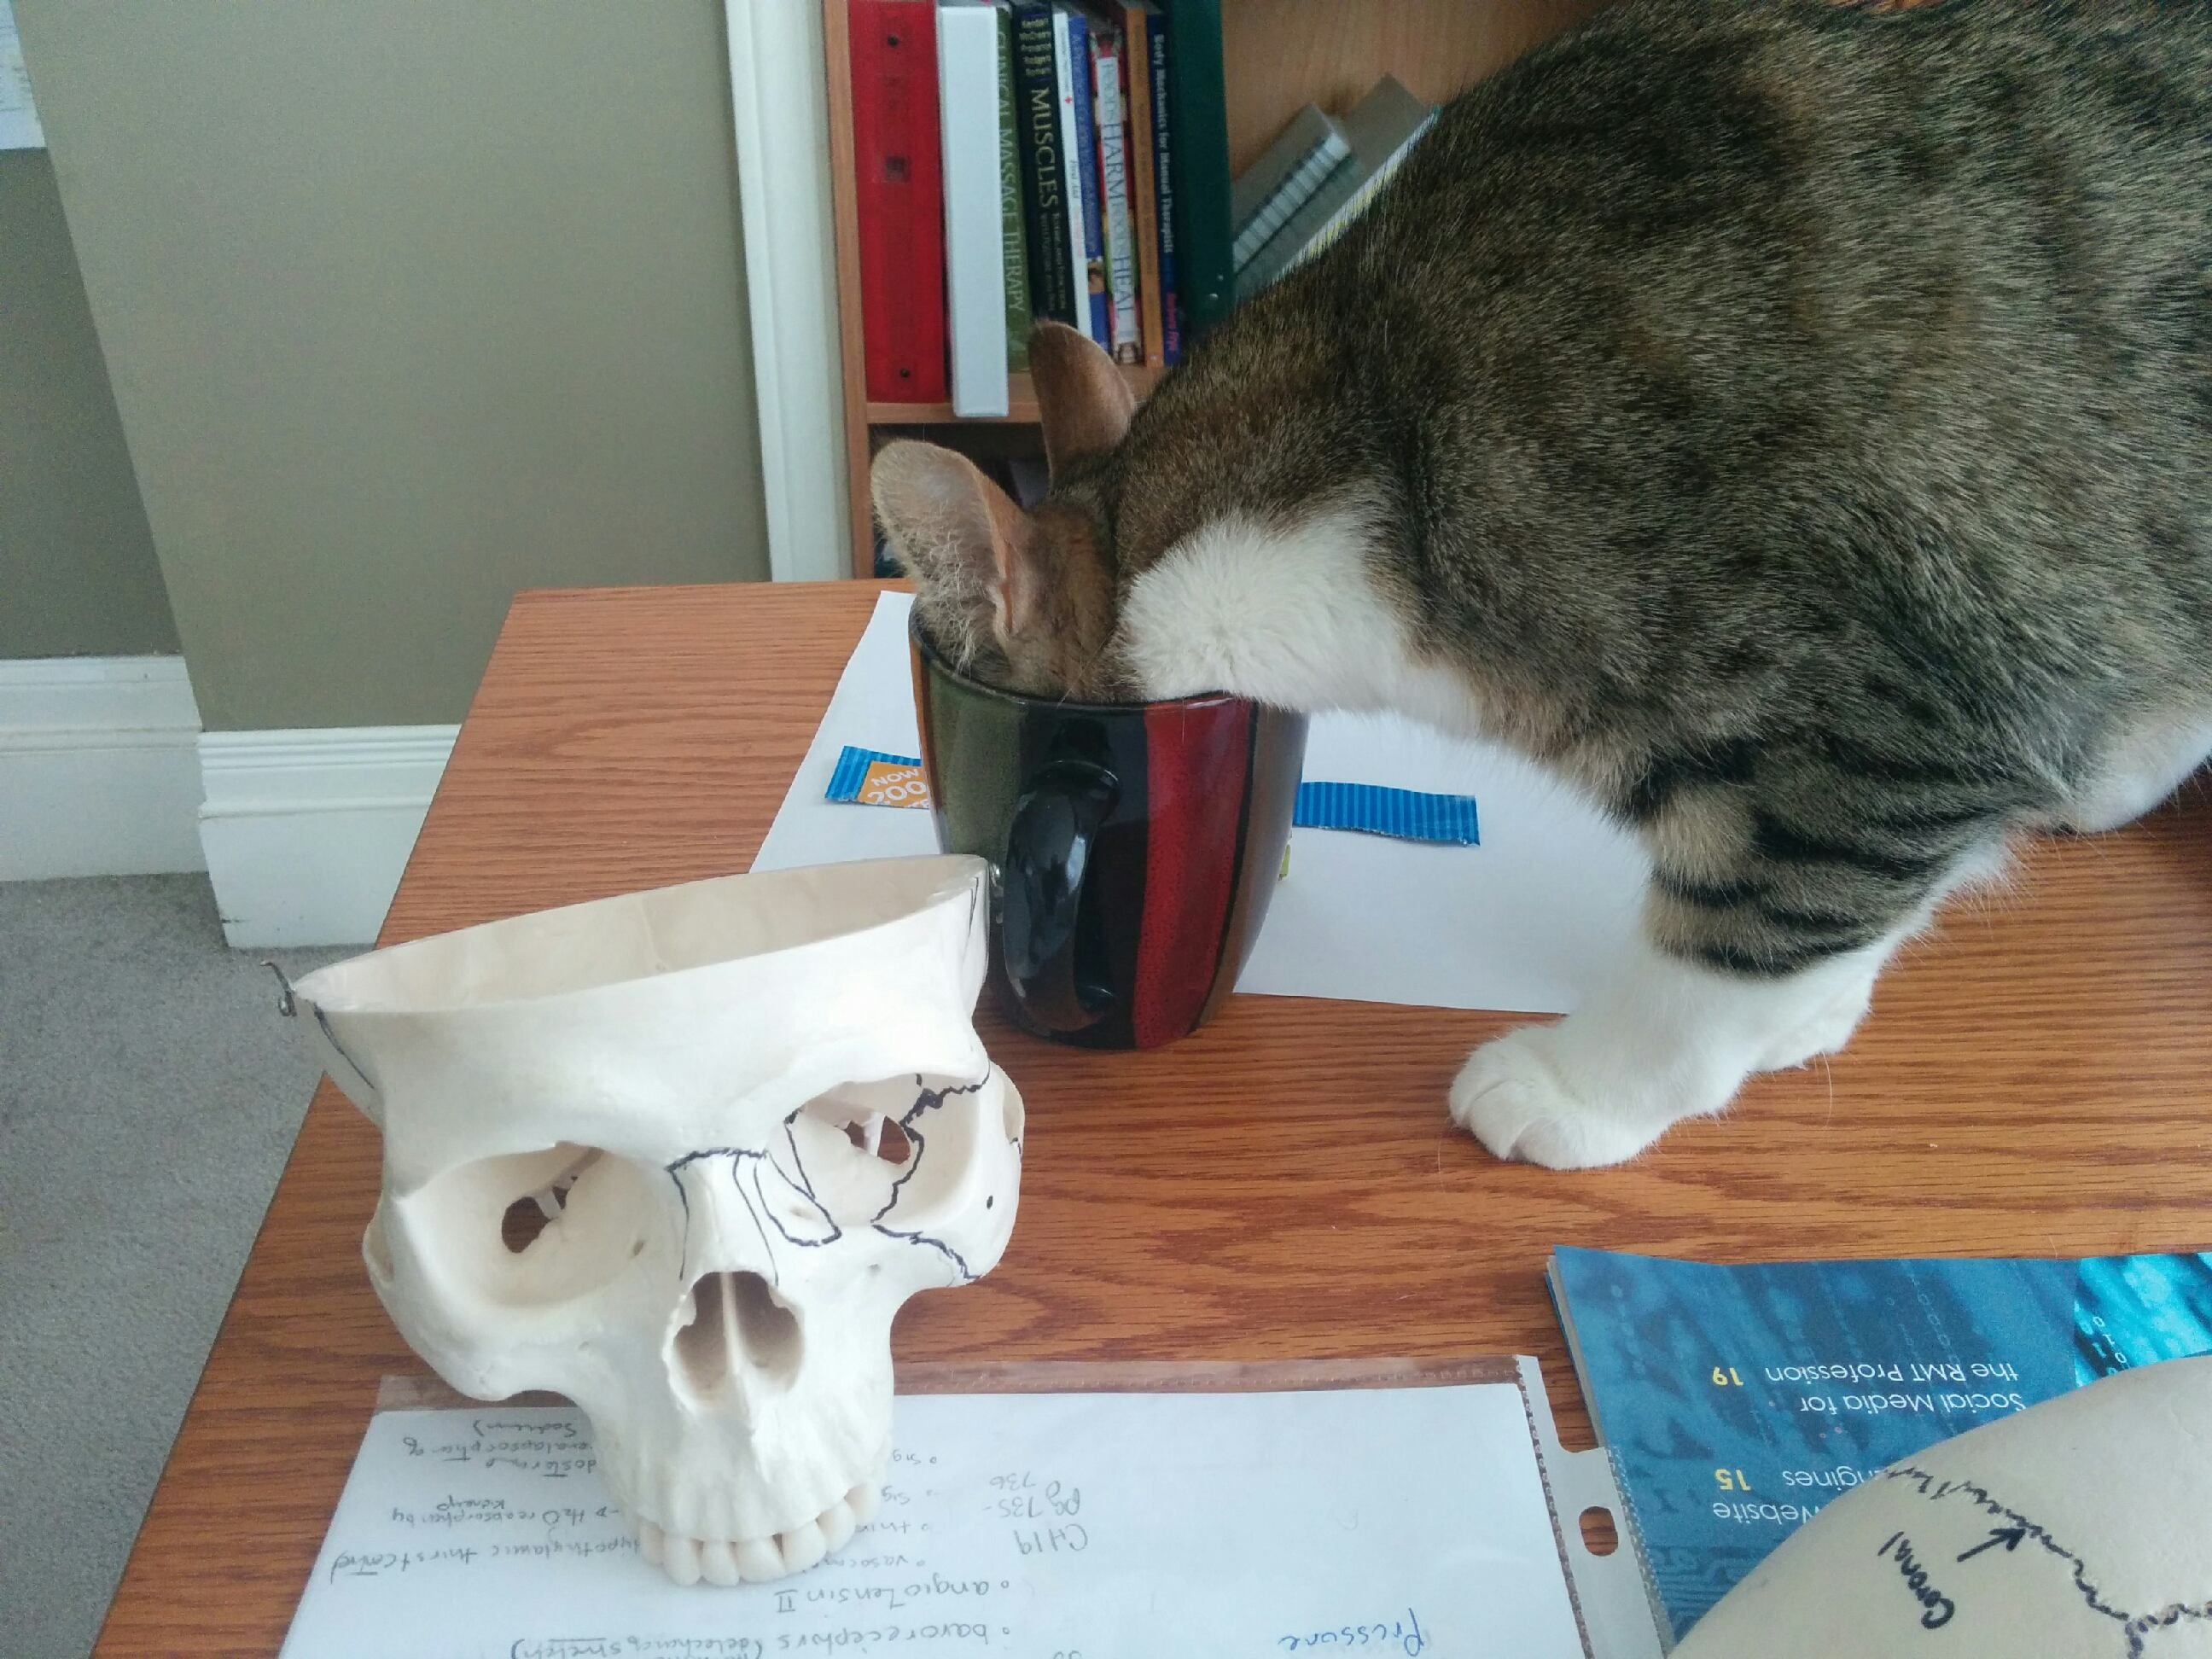 My wifeus cat loves tea skull for scale iftqaaew